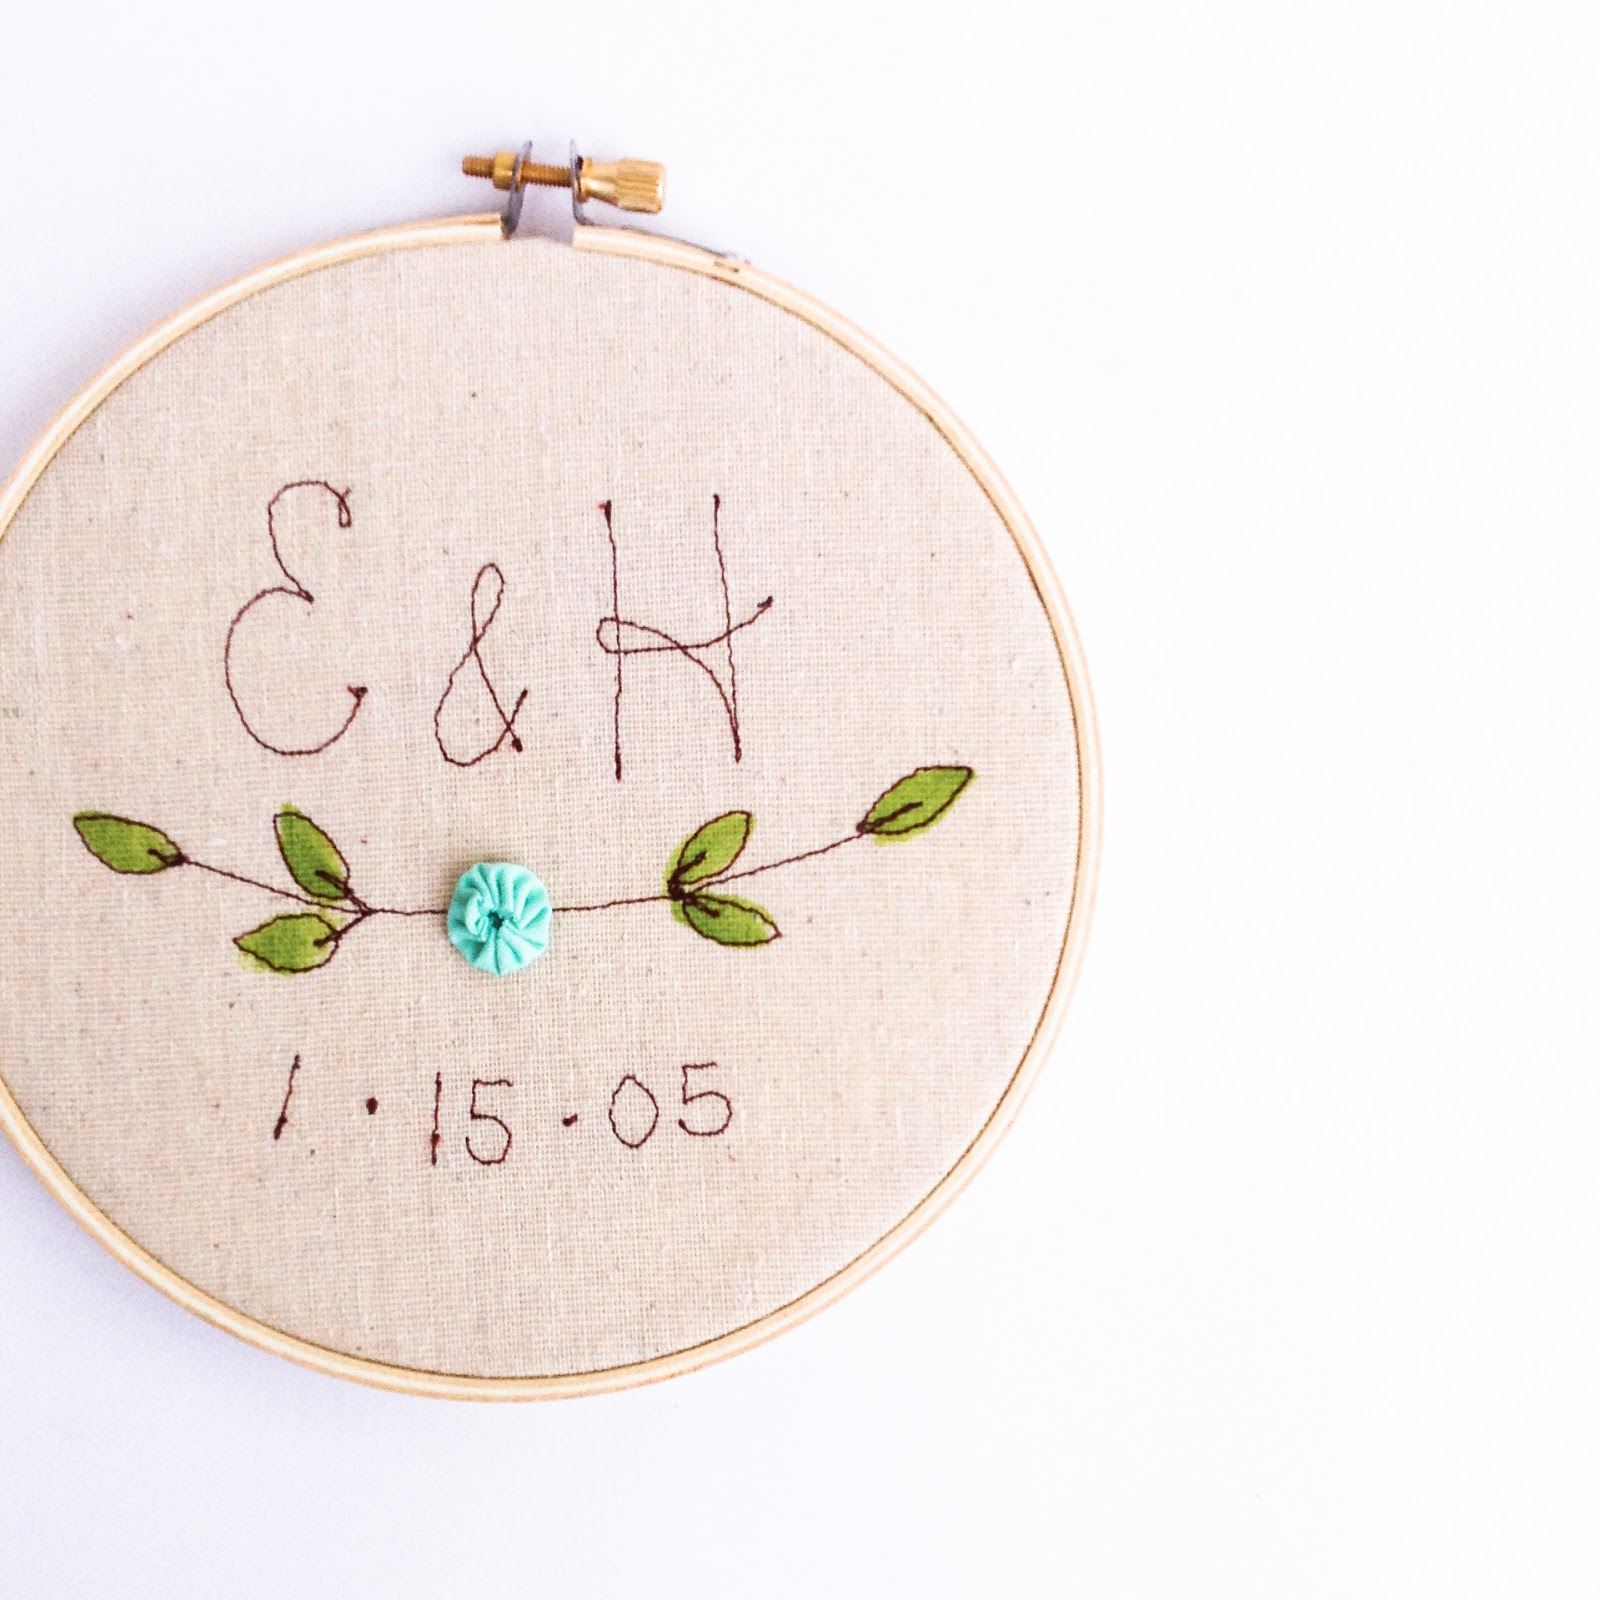 https://www.etsy.com/listing/180443334/personalized-wedding-gift-embroidered?ref=shop_home_active_3